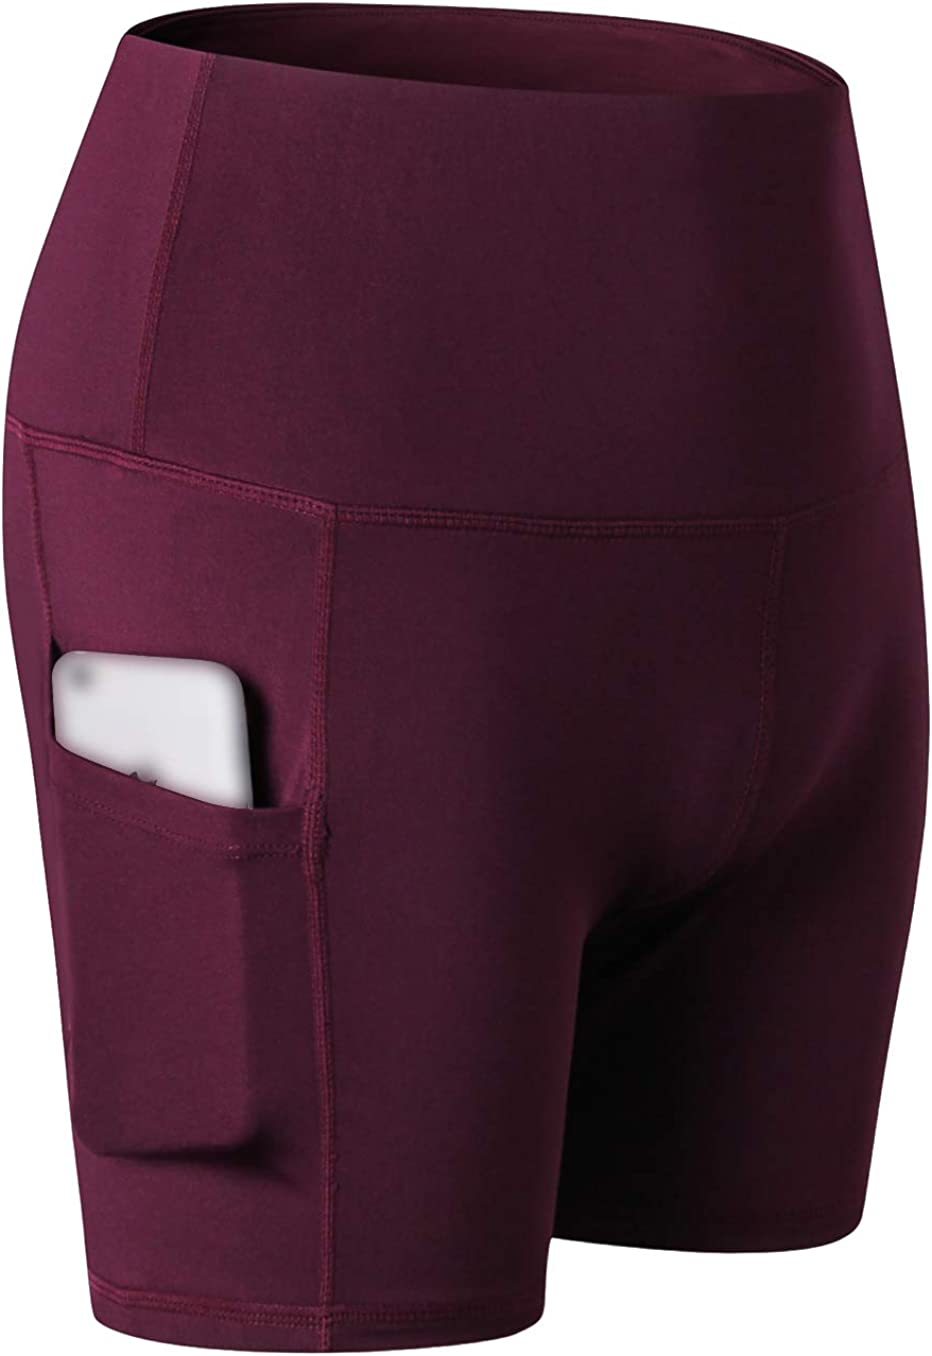 "DZRZVD Women's 3"" High Waist Workout Yoga Running Compression Exercise Shorts Side Pockets 2049-Wine-M"